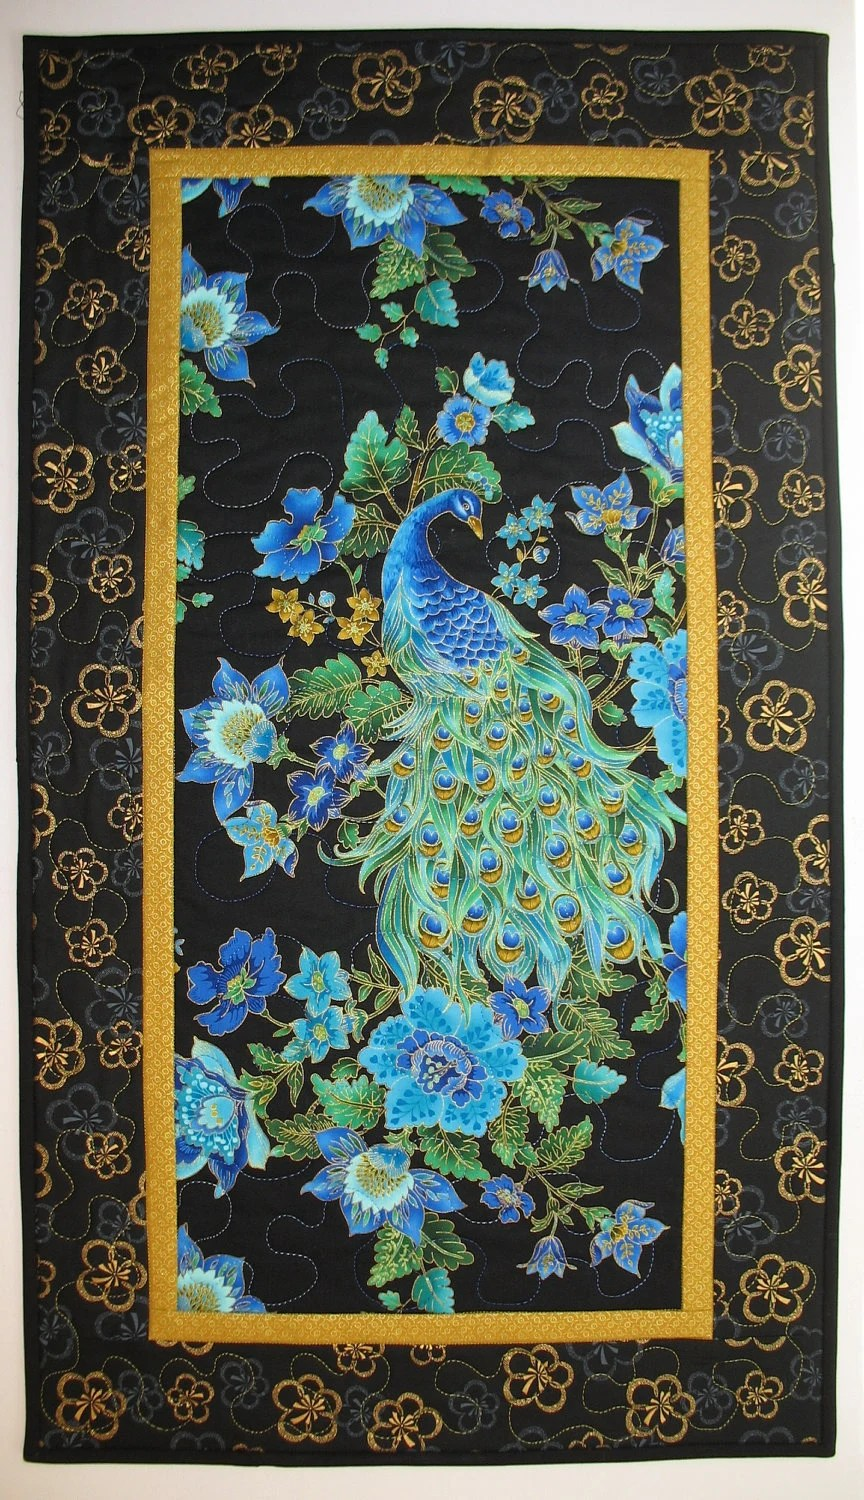 Peacock Quilted Wall Art In Timeless Treasure By